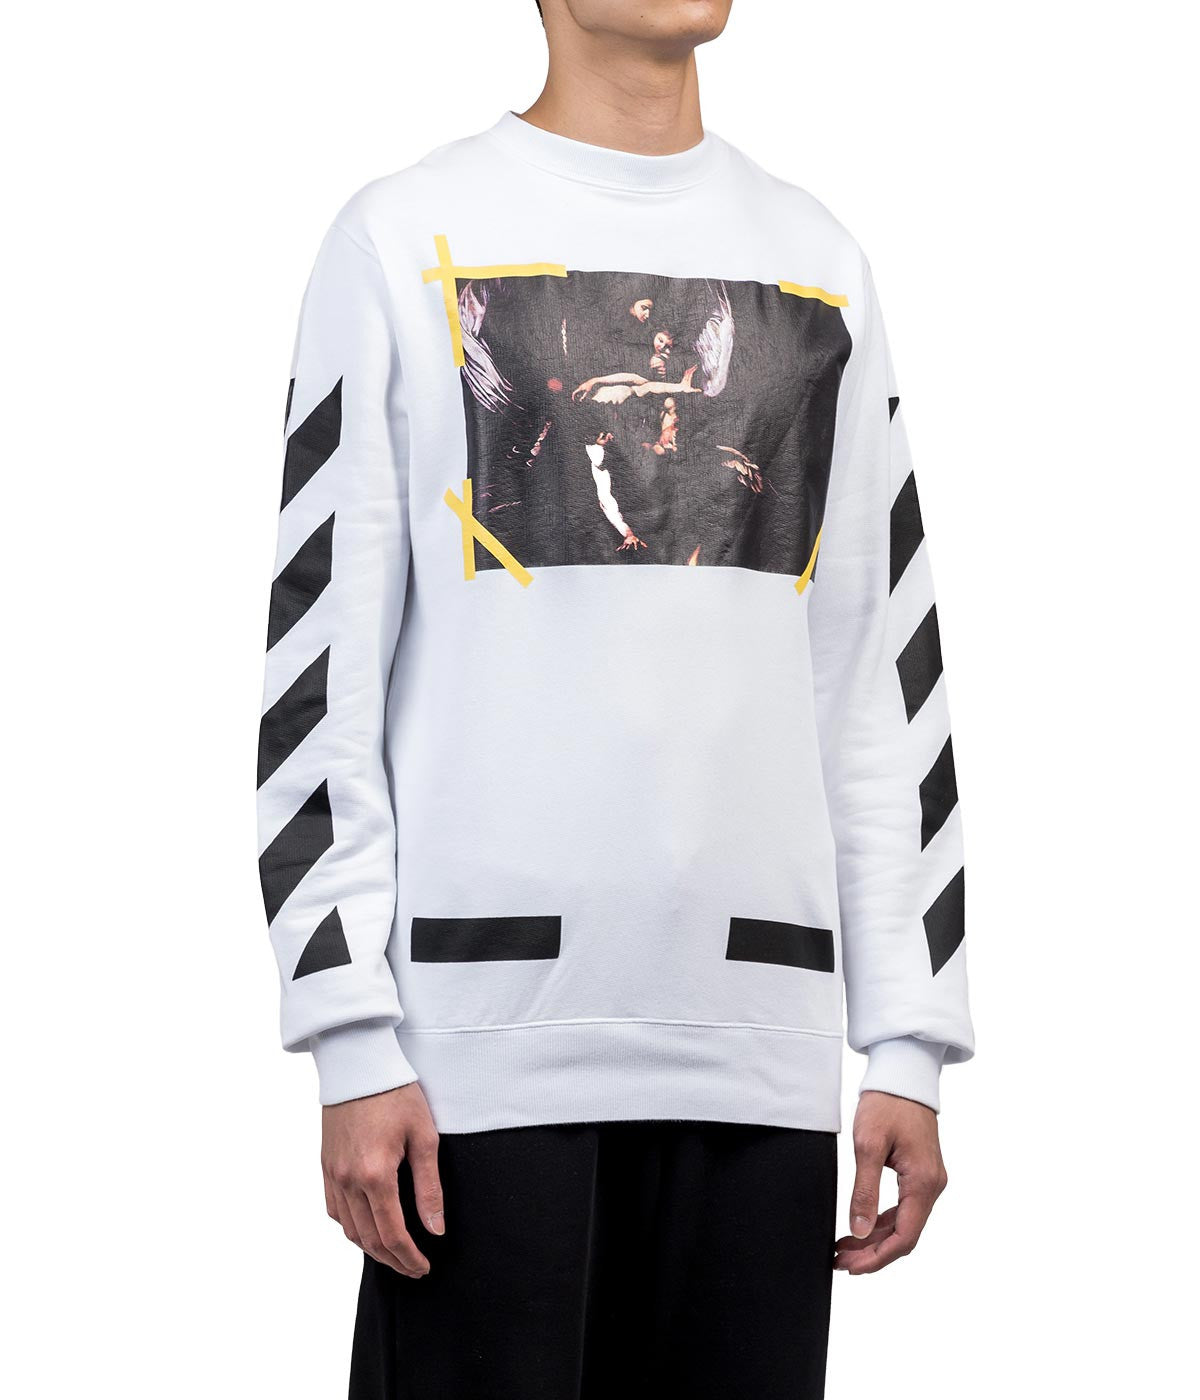 White Painting Print Sweatshirt